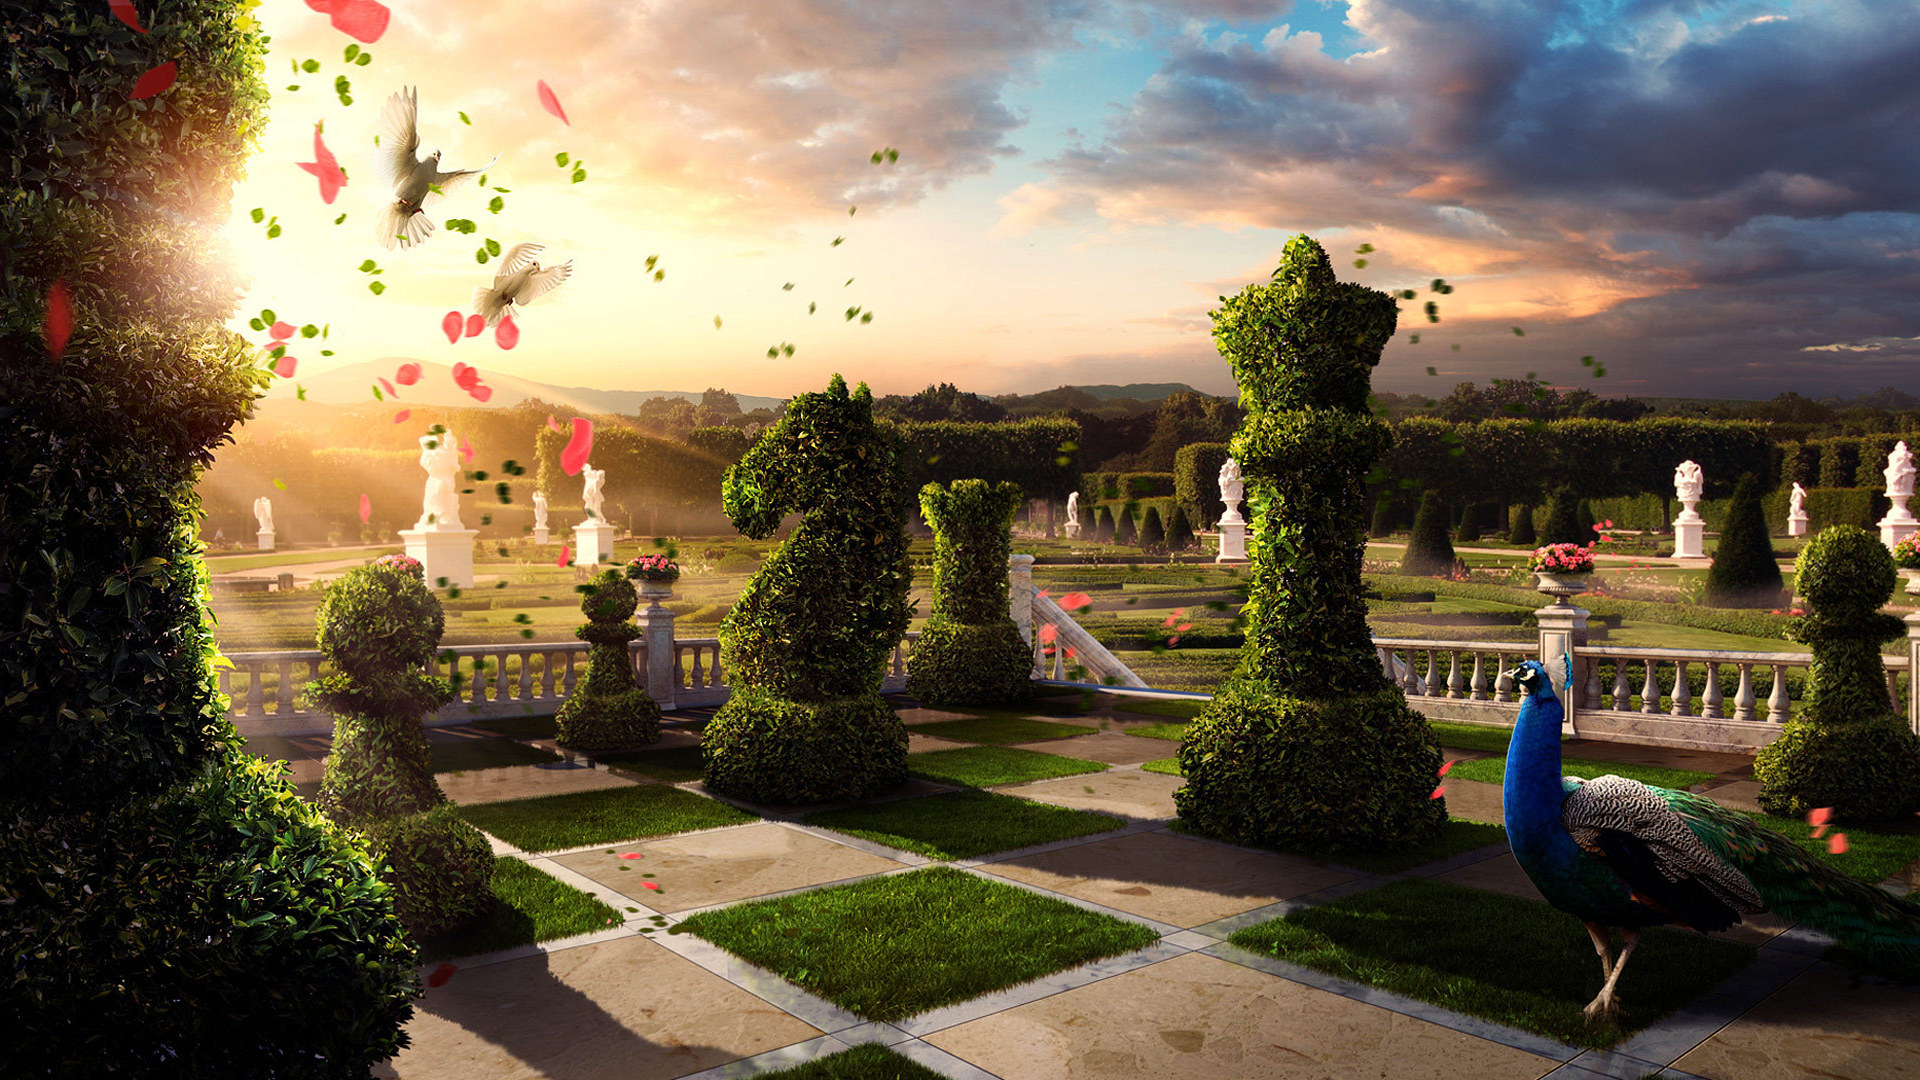 Surrealism Hd Wallpapers Backgrounds High Definition: Backgrounds - Wallpaper Abyss